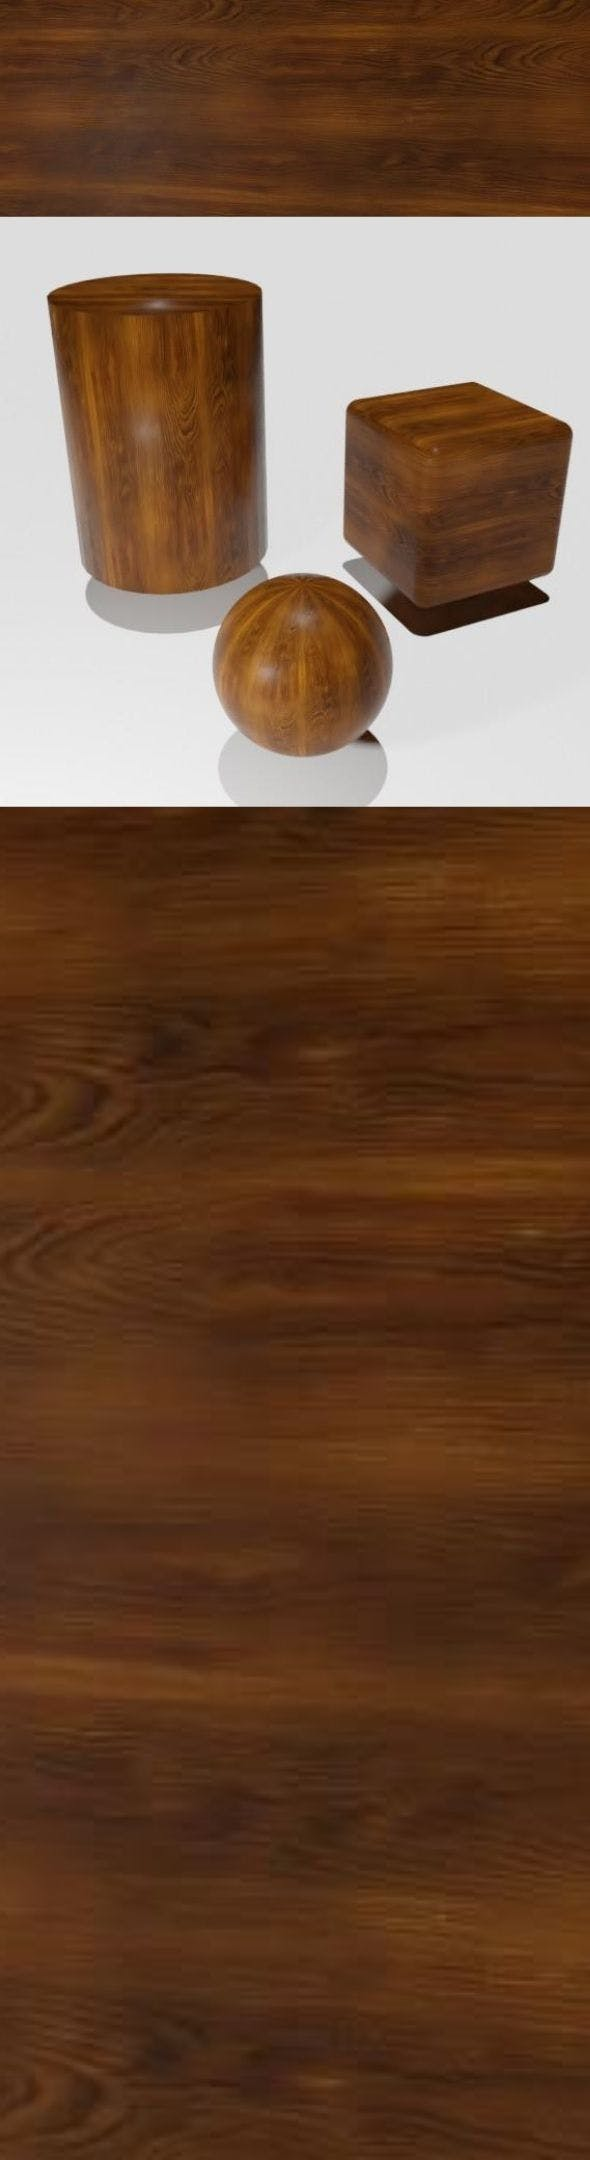 Smooth brown wood veneer - 3DOcean Item for Sale